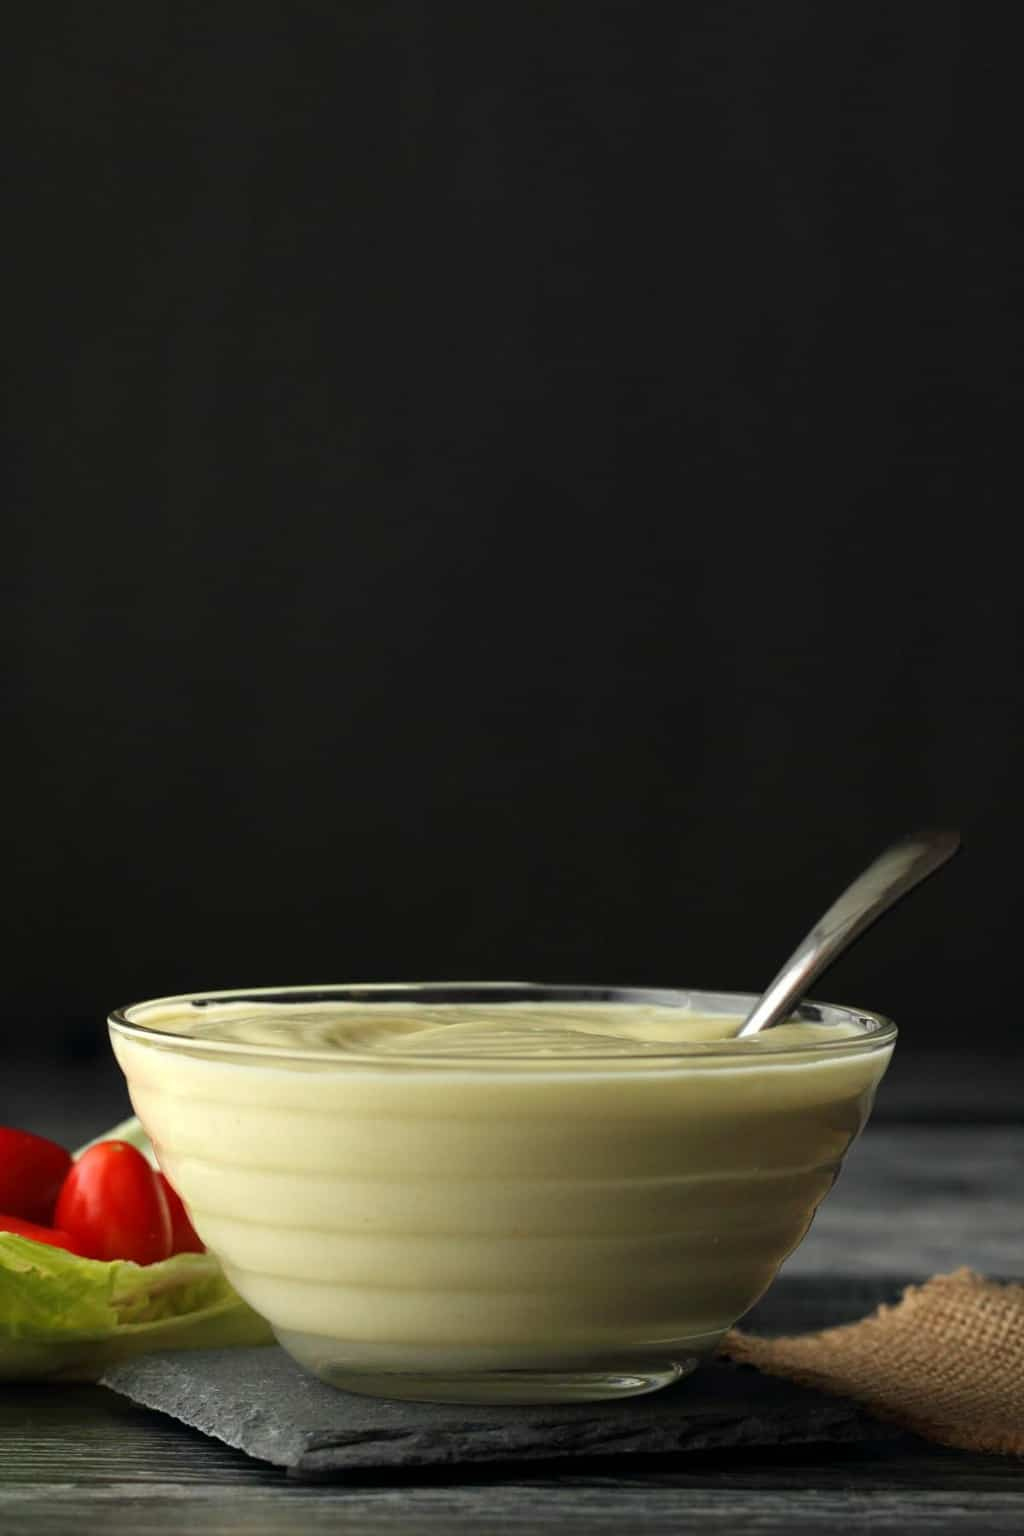 Vegan Mayonnaise in a glass bowl.